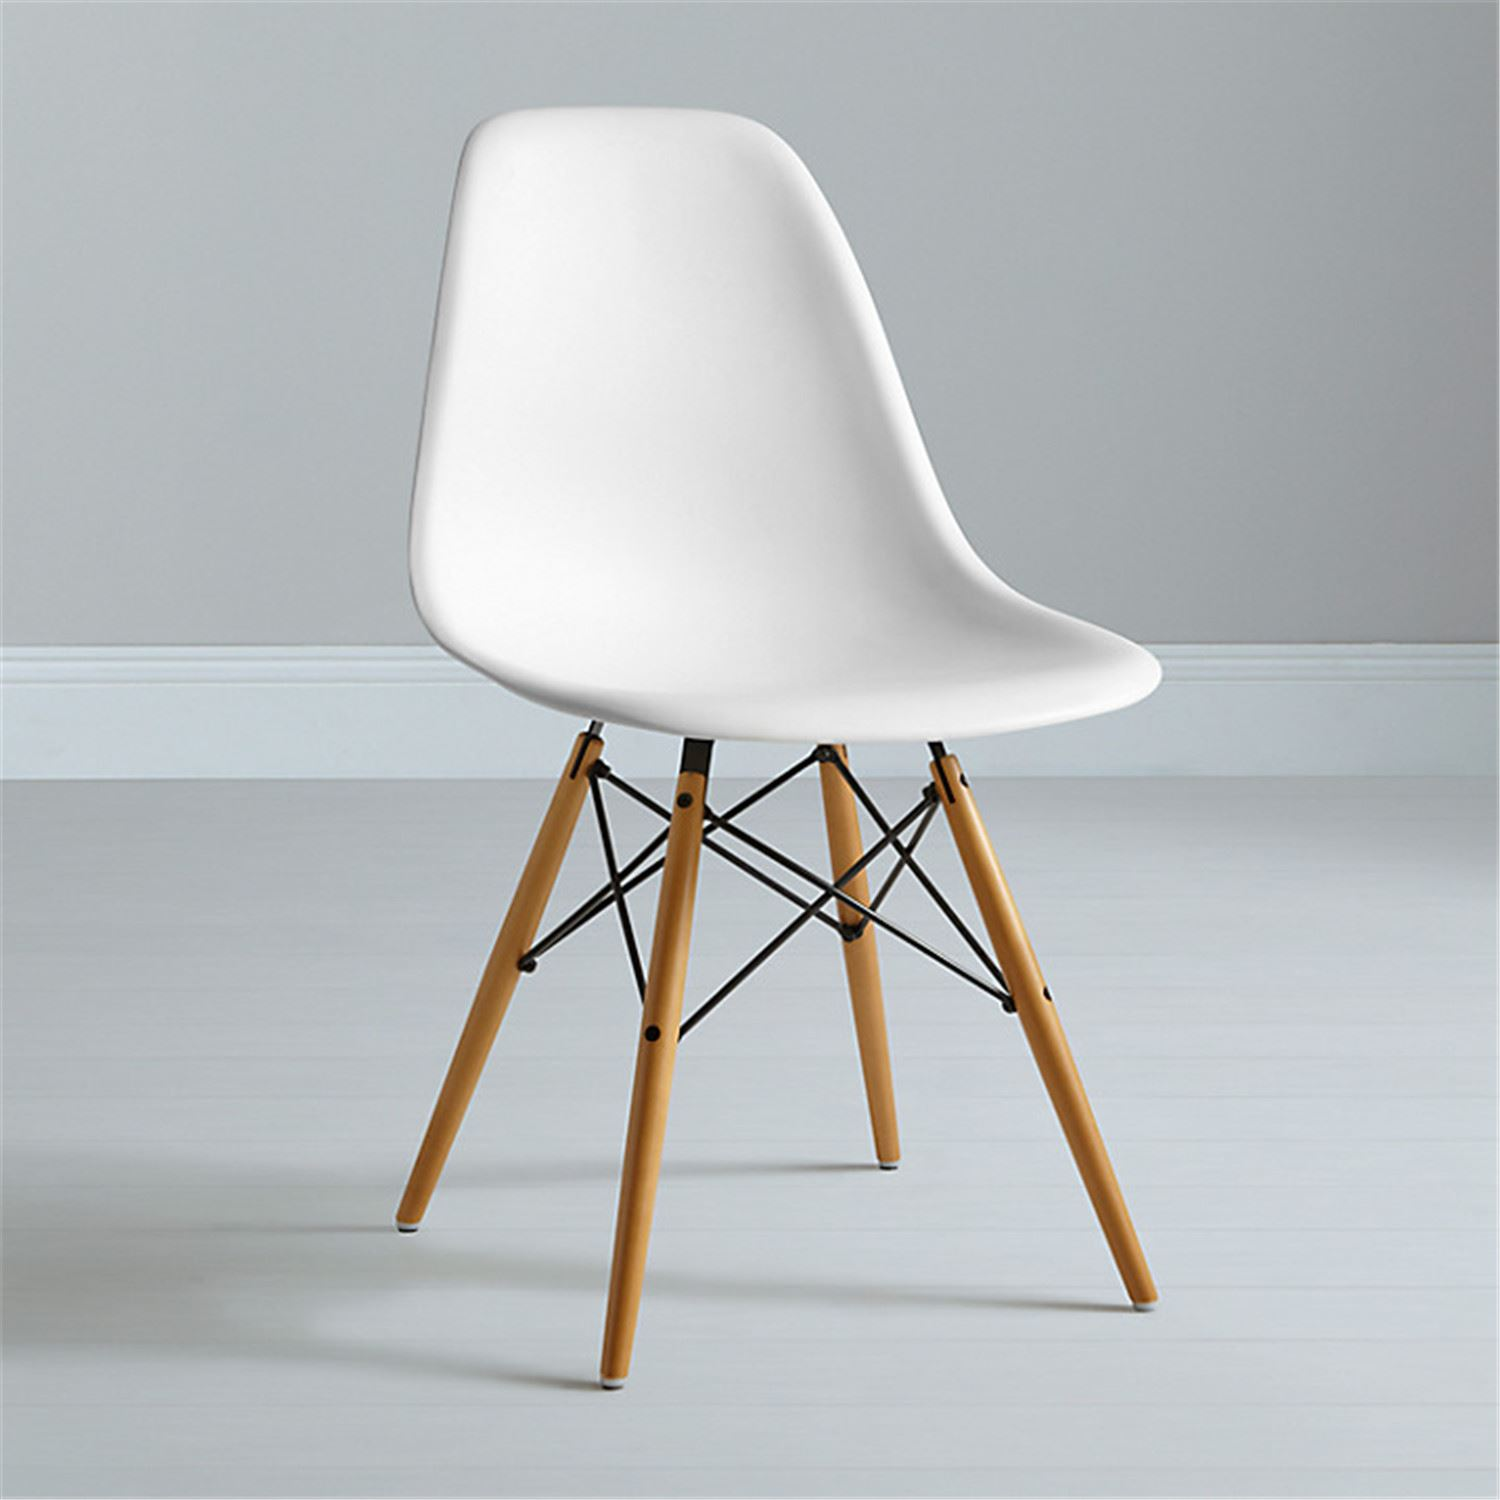 Charles ray eames eiffel inspired dsw side living dining room office chair - Eames dsw eiffel chair ...